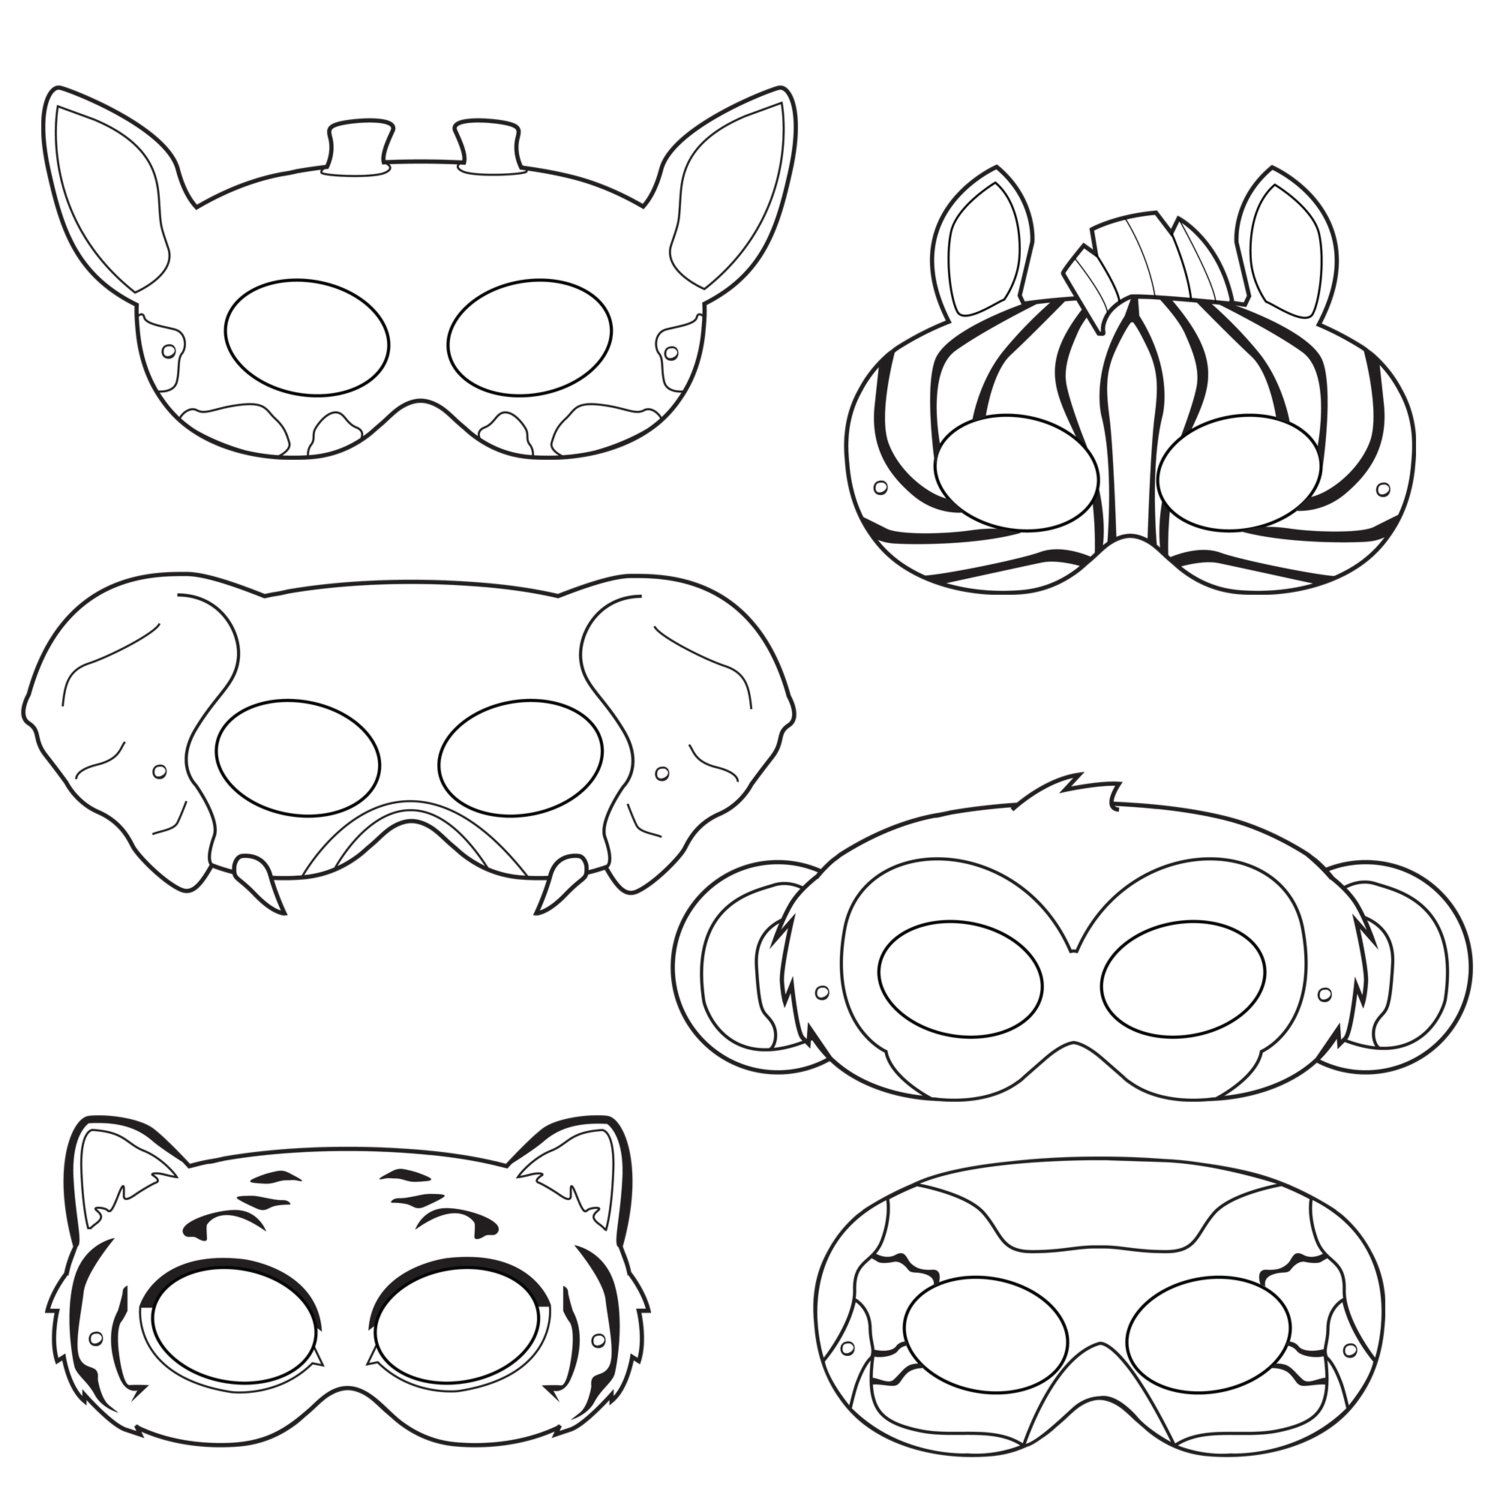 Jungle animaux coloriage masques masque de par happilyafterdesigns carnival pinterest - Coloriage masque ...